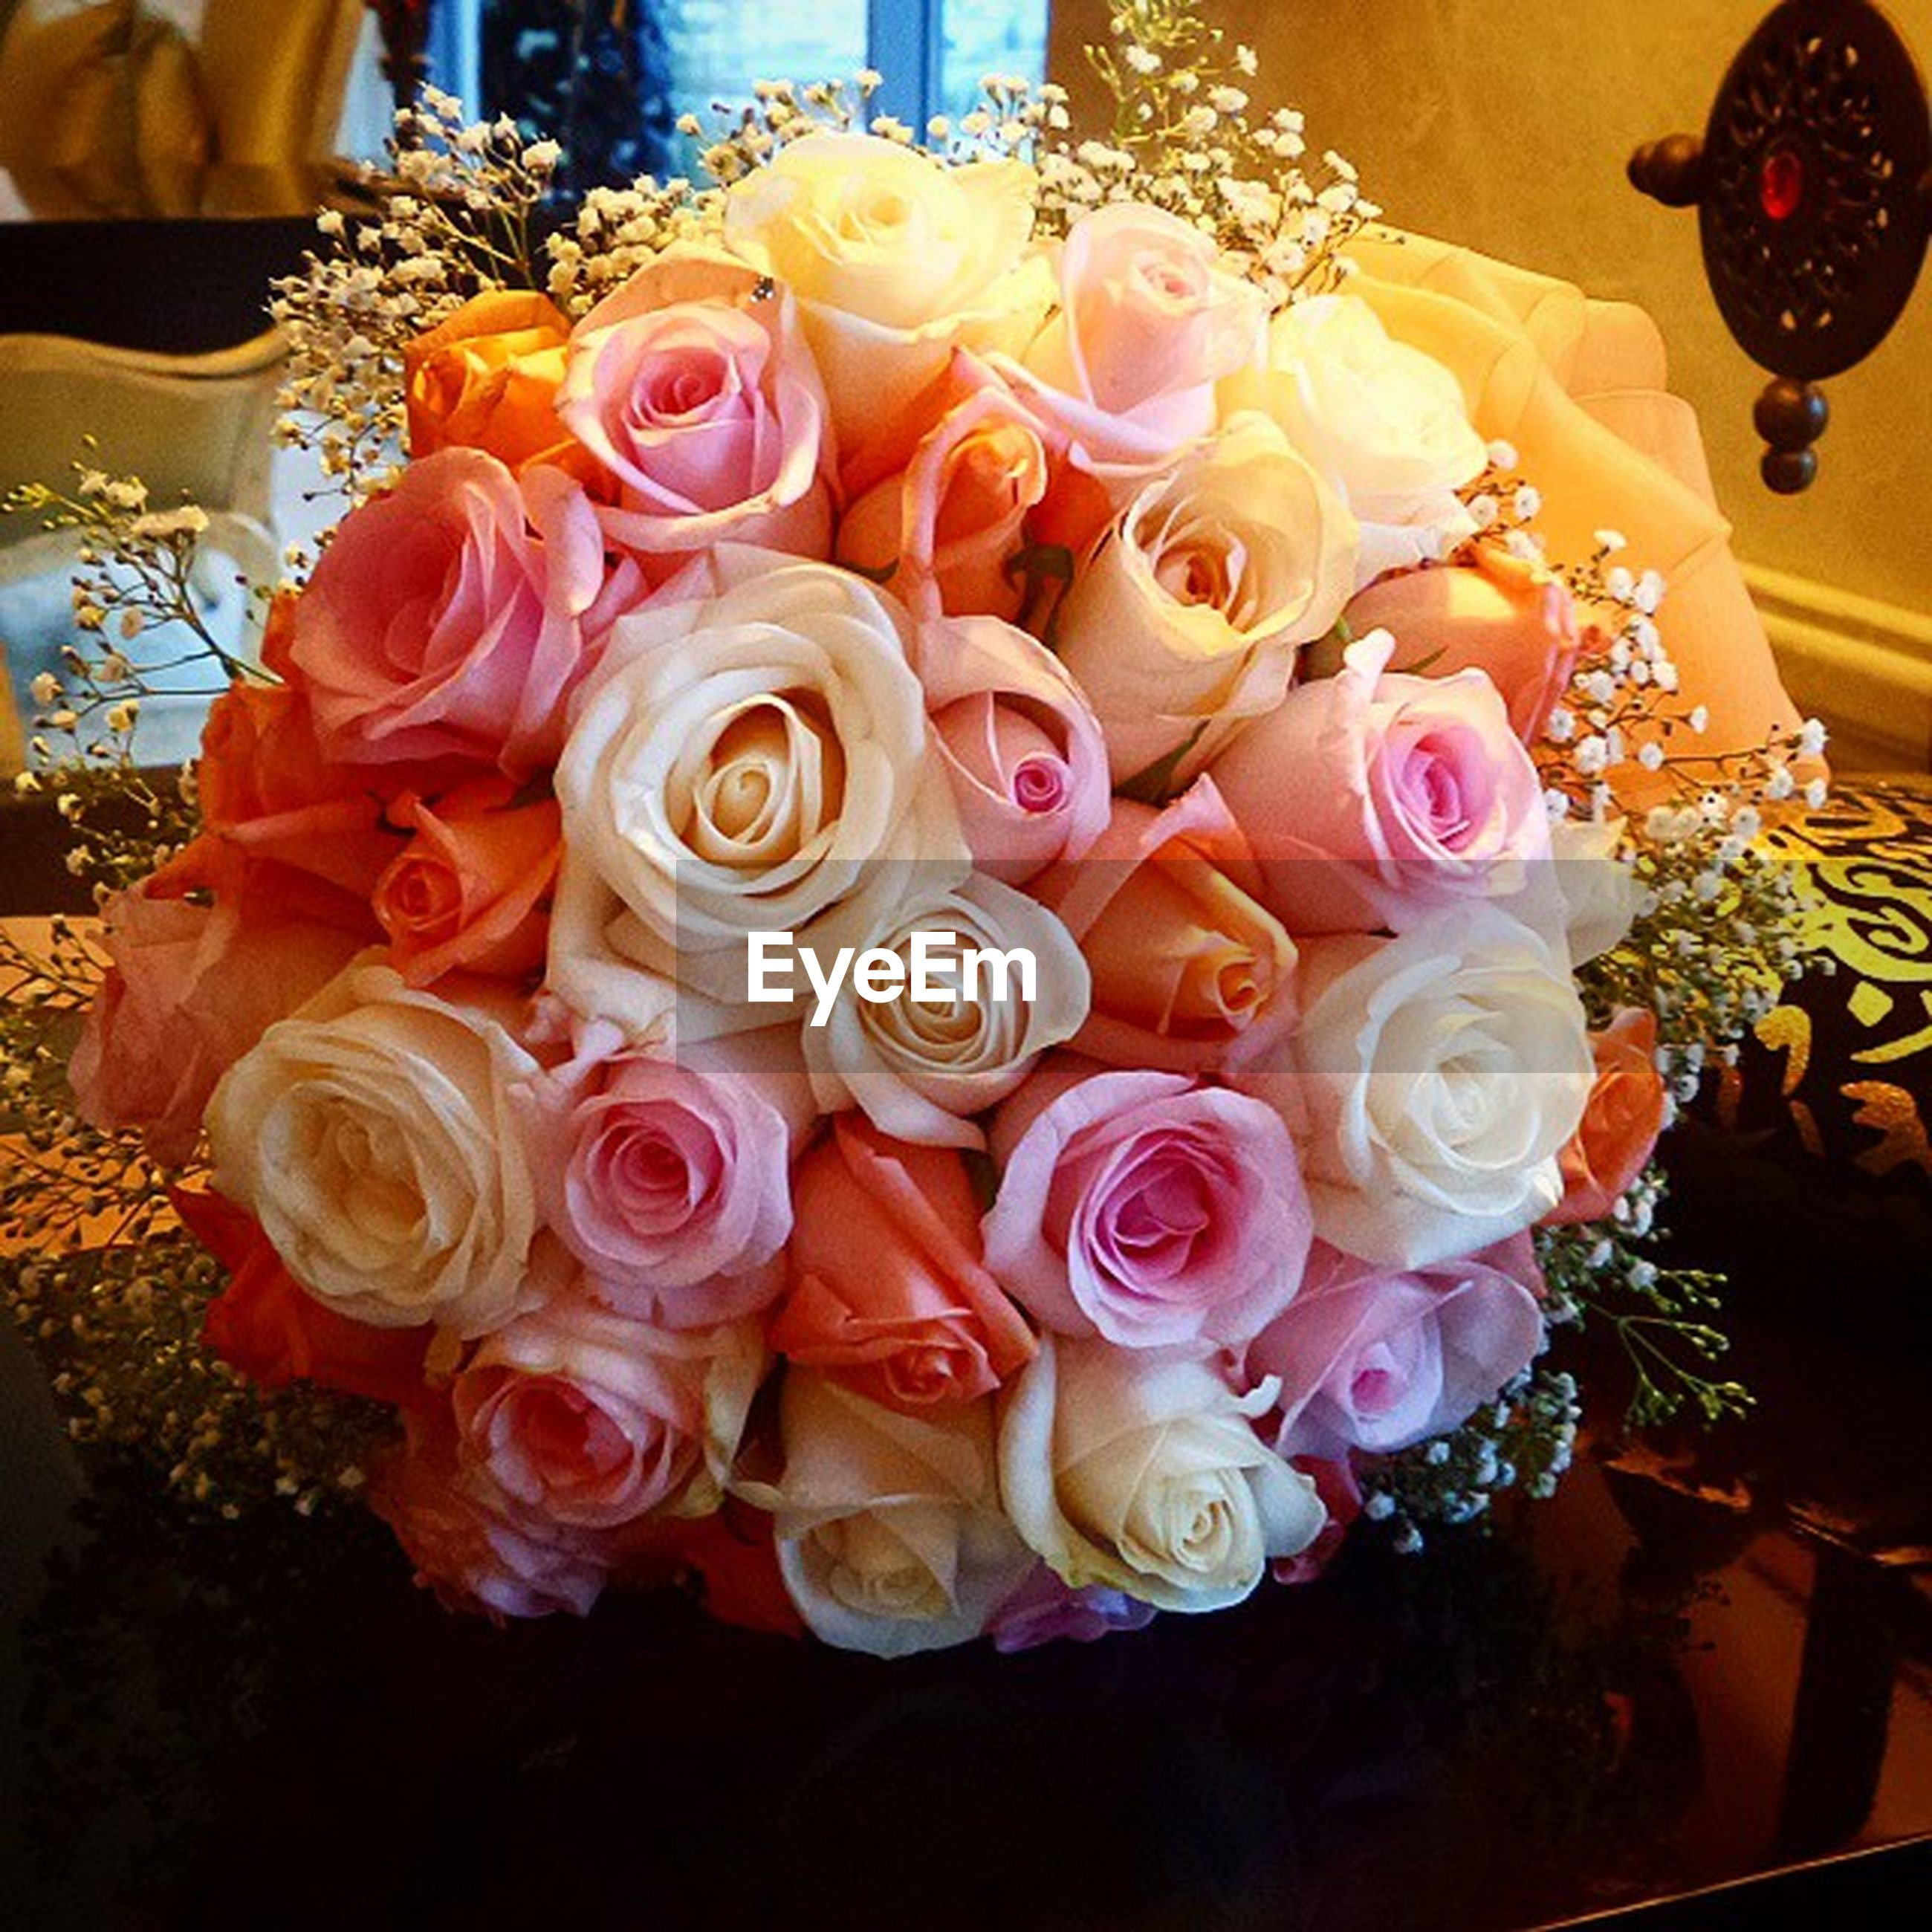 indoors, flower, freshness, bouquet, rose - flower, variation, vase, petal, decoration, table, still life, arrangement, bunch of flowers, fragility, flower arrangement, choice, multi colored, flower head, high angle view, close-up